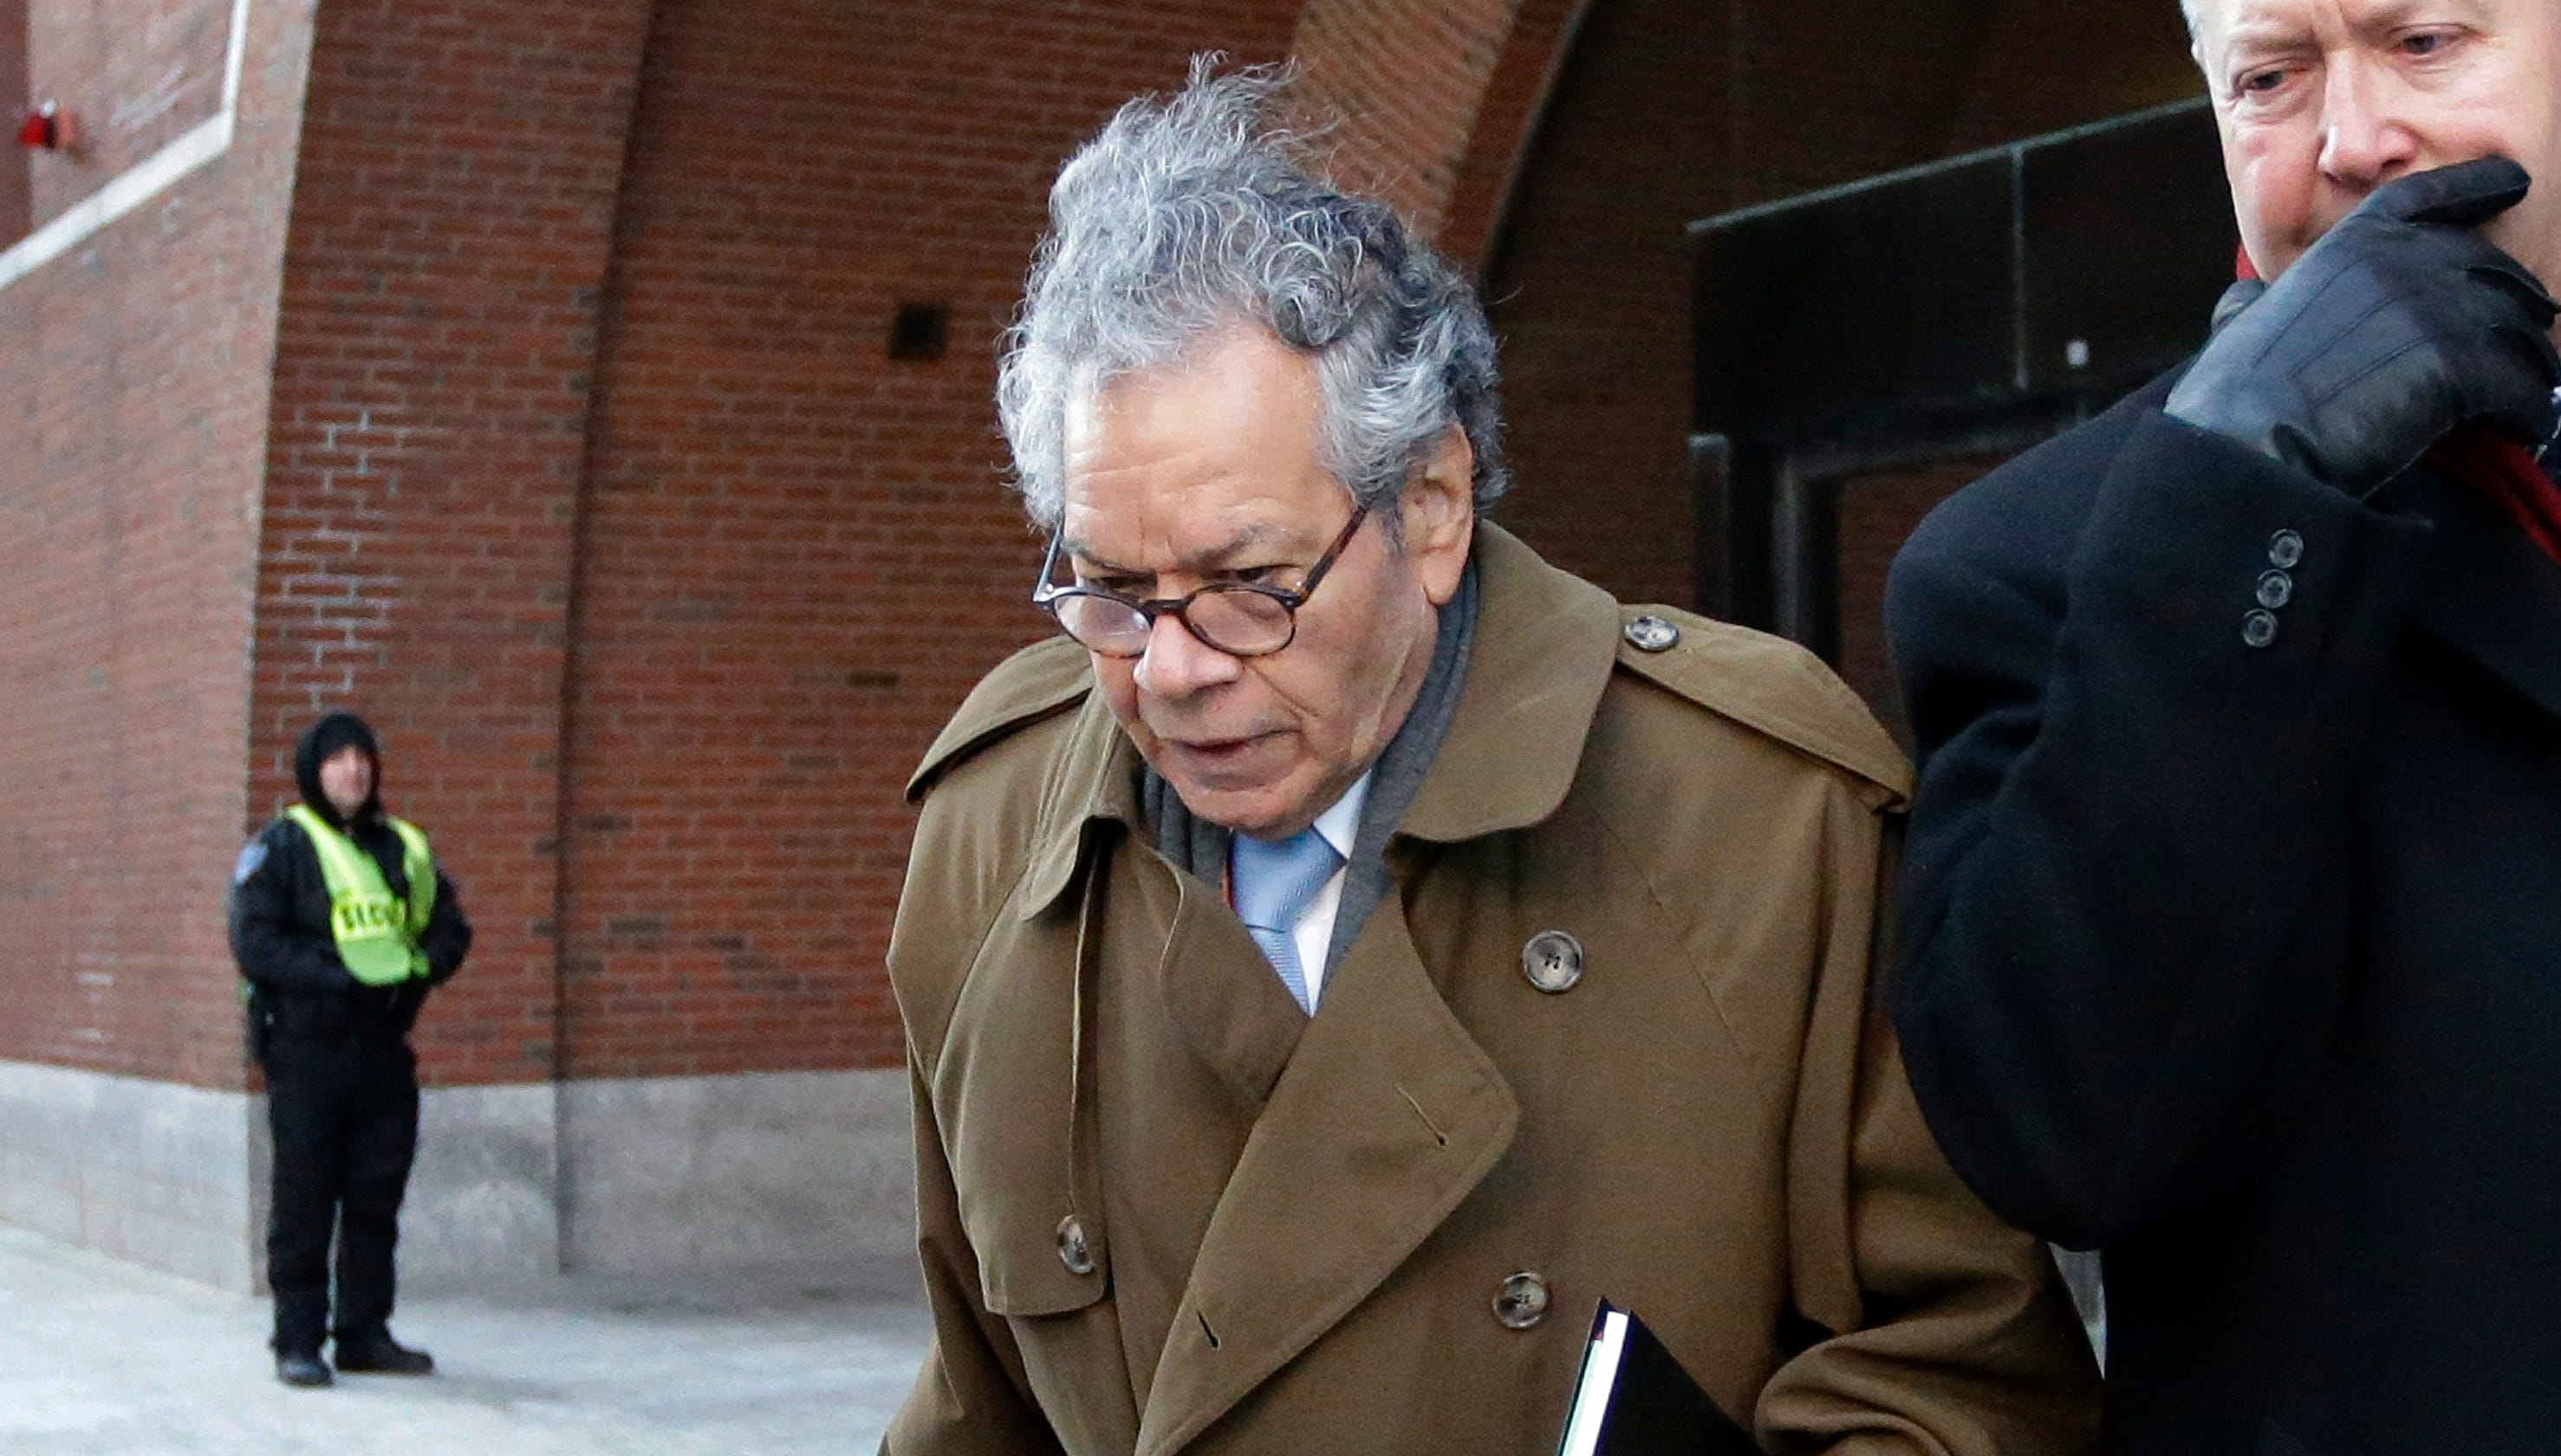 Insys Therapeutics CEO John Kapoor, 4 other execs found guilty in fentanyl bribery case thumbnail